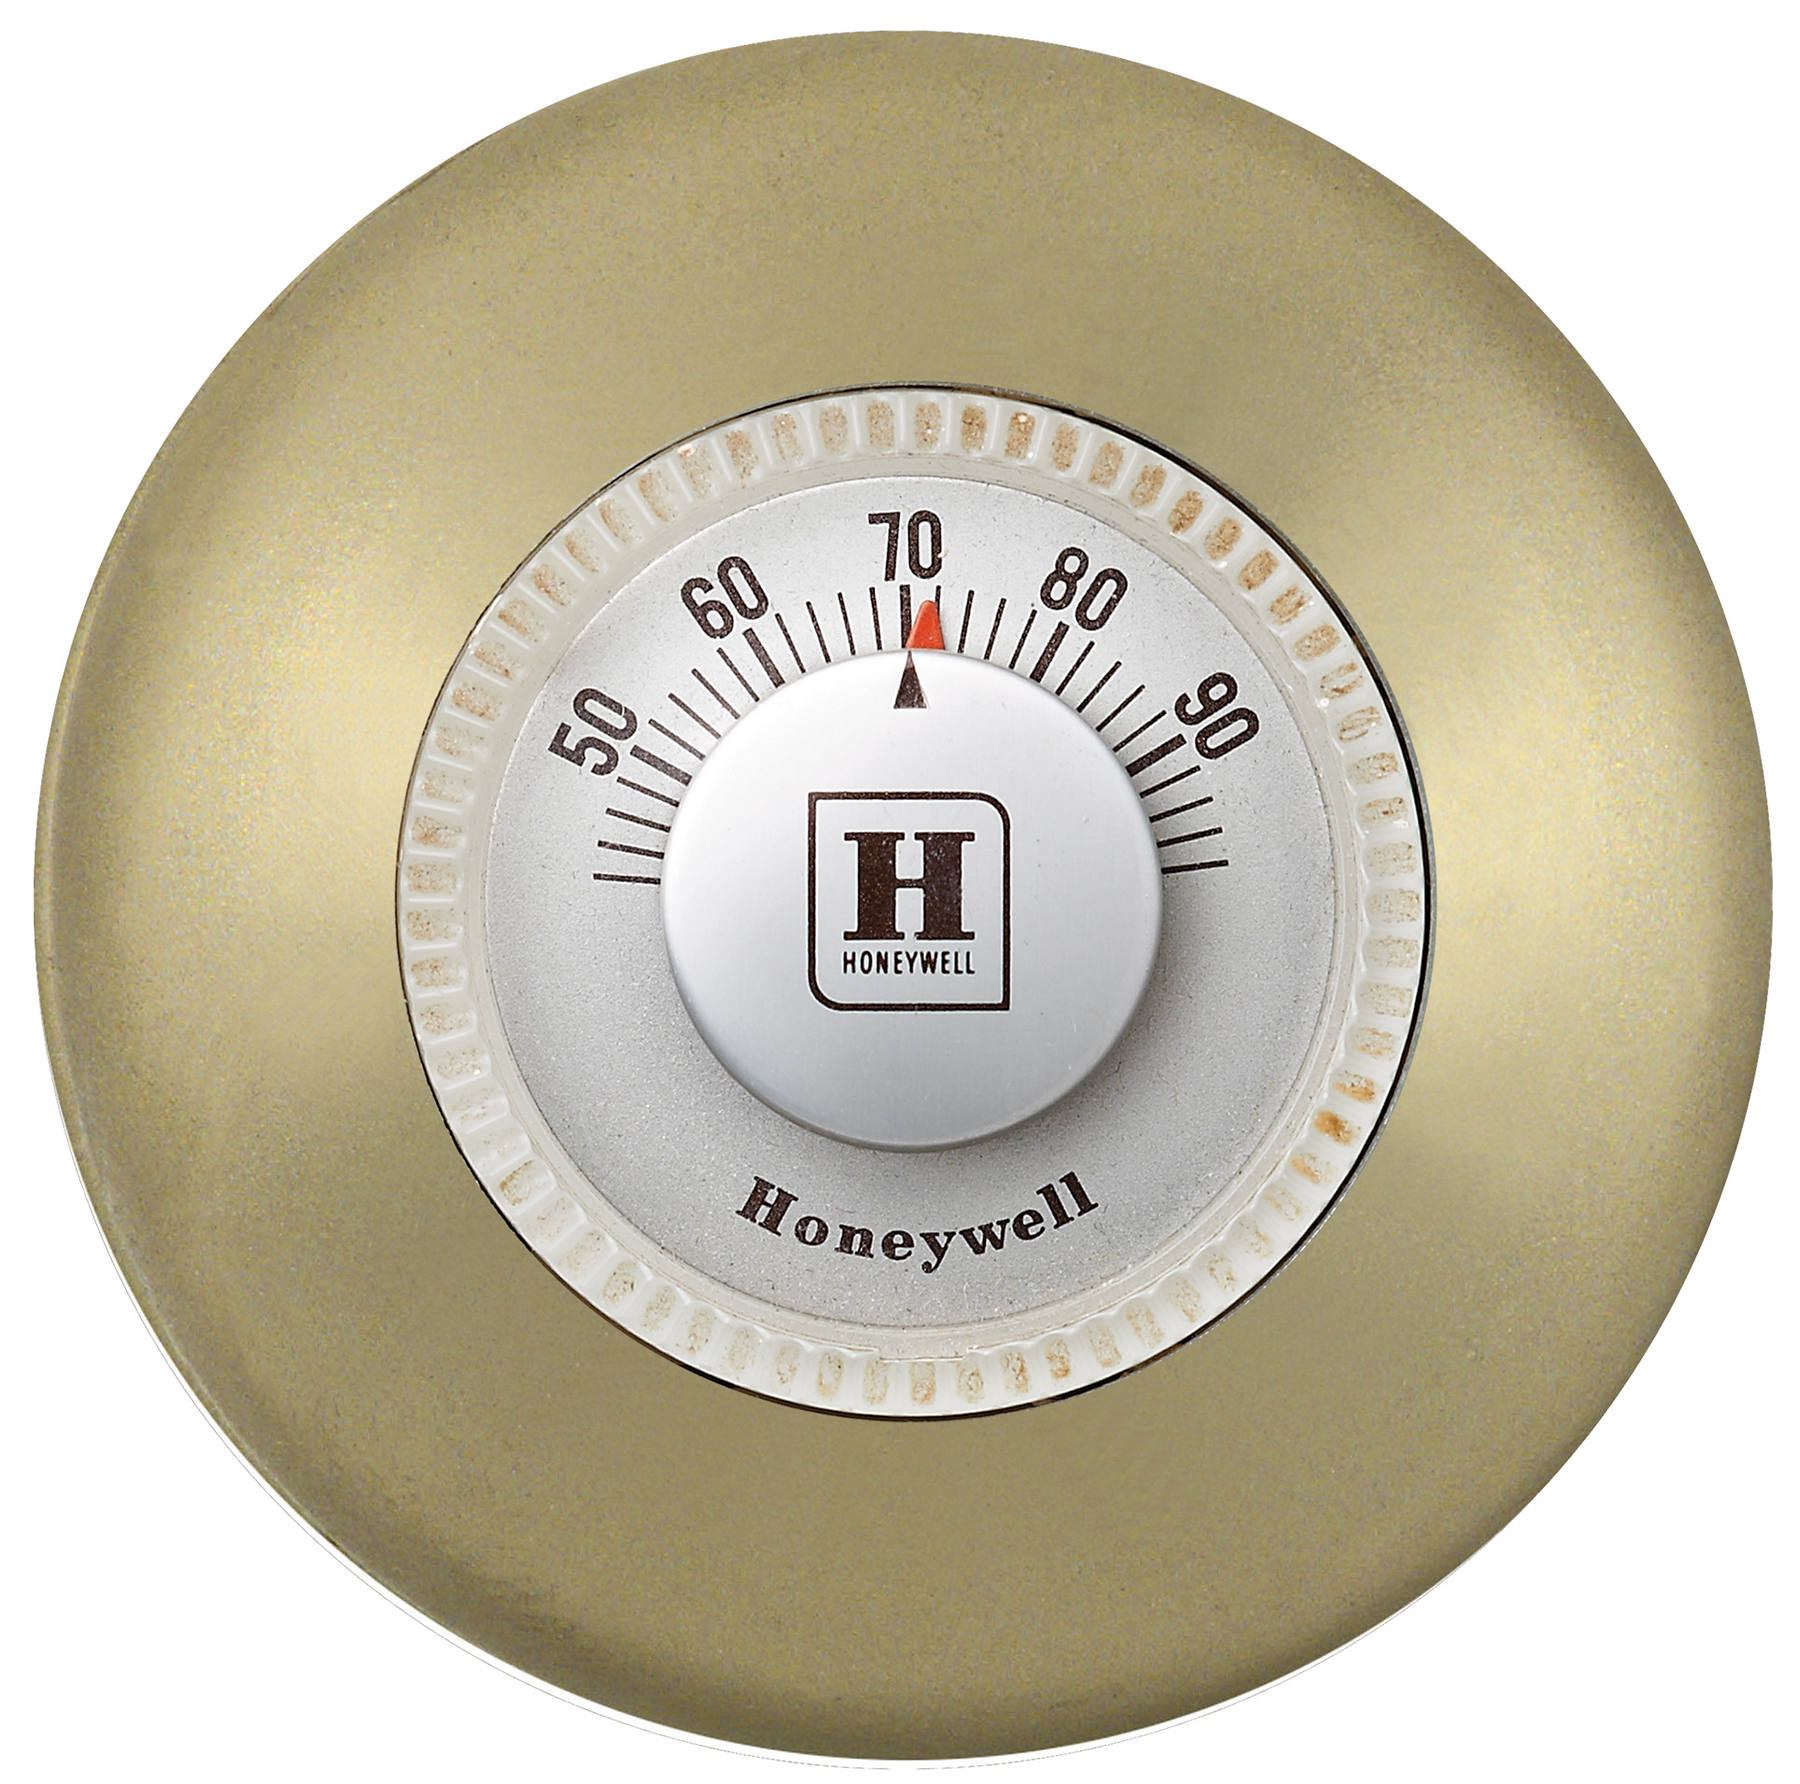 Comfort When Youre Home Savings Away Introducing Honeywell Single Zone Connected Thermostat Rix Petroleum Reinvented By The Lyric